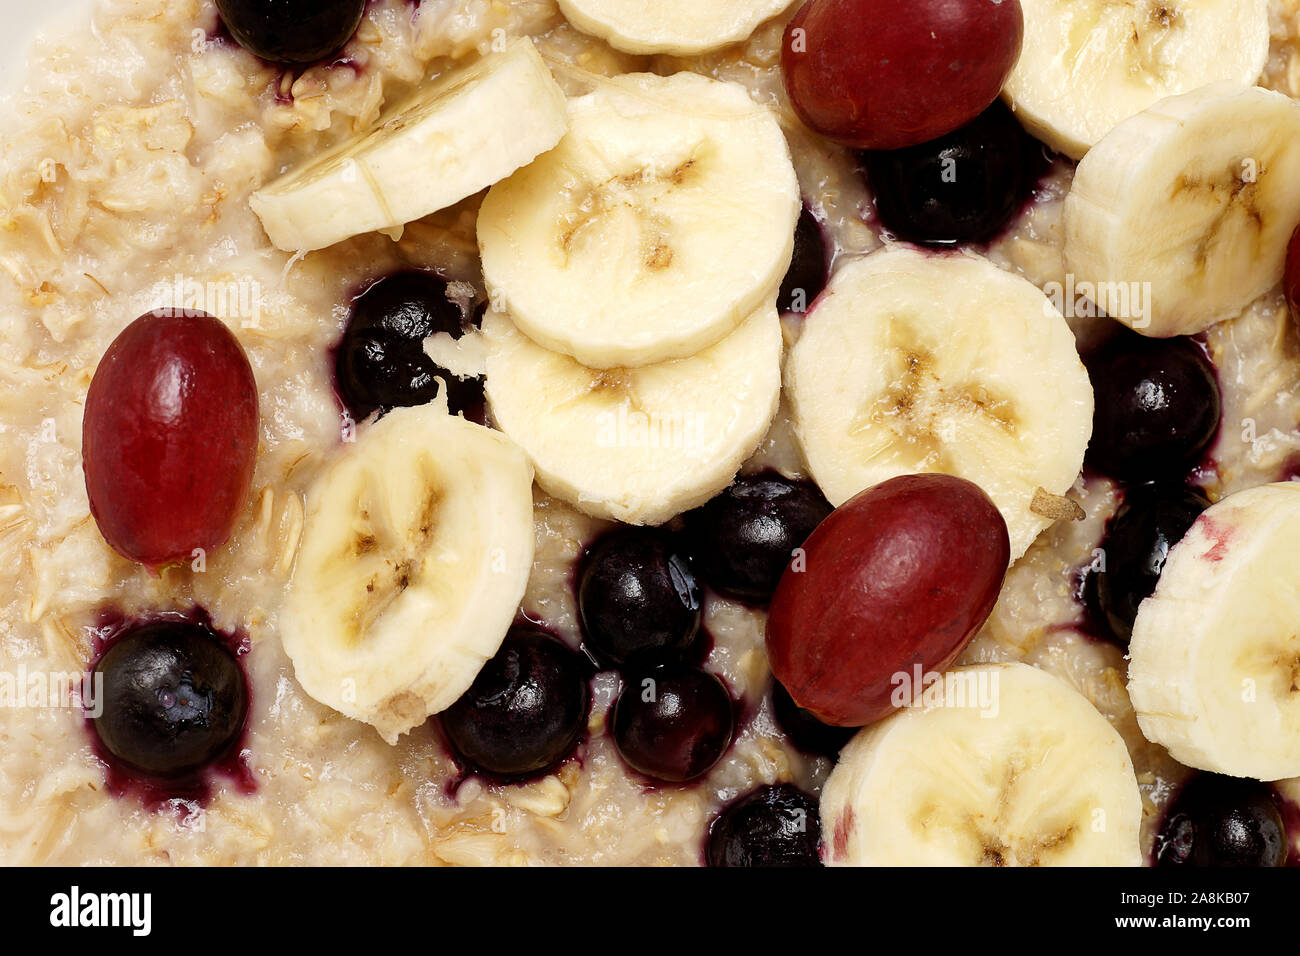 Oatmeal Breakfast With Bananas Blueberries And Red Grapes Isolated On White Background And Photographed From Directly Above Stock Photo Alamy